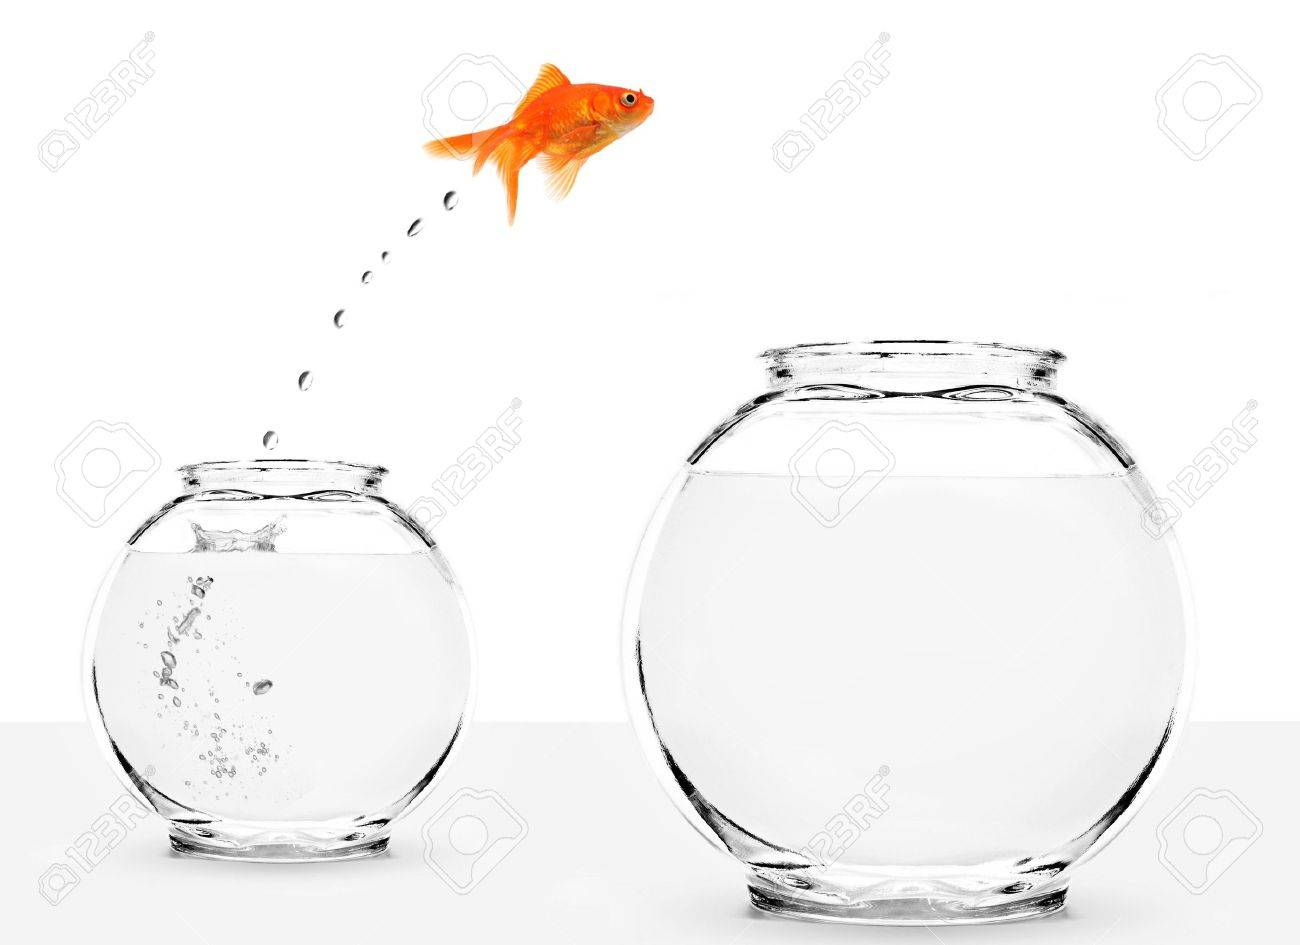 goldfish jumping from small to bigger bowl isolated on white background Stock Photo - 5744707